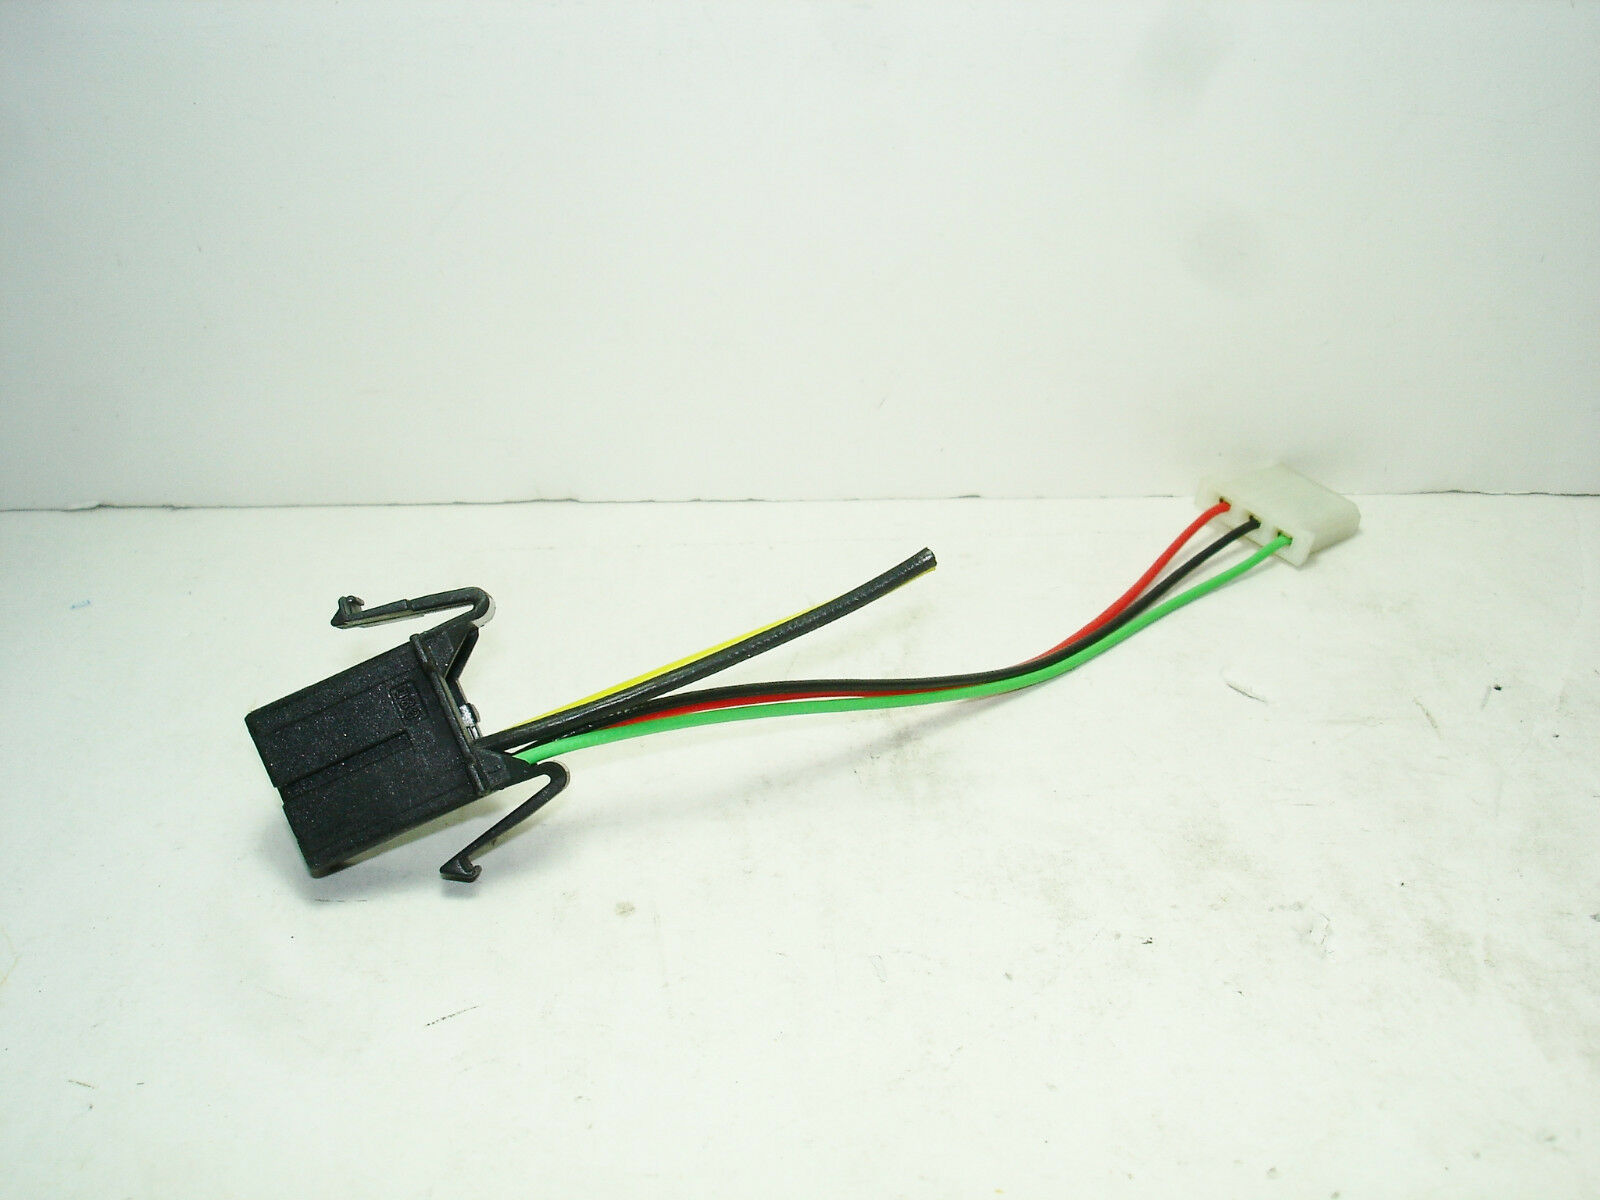 oem al xenon hid d2s ballast to 3 pin igniter wire harness socket you re almost done oem al xenon hid d2s ballast to 3 pin igniter wire harness